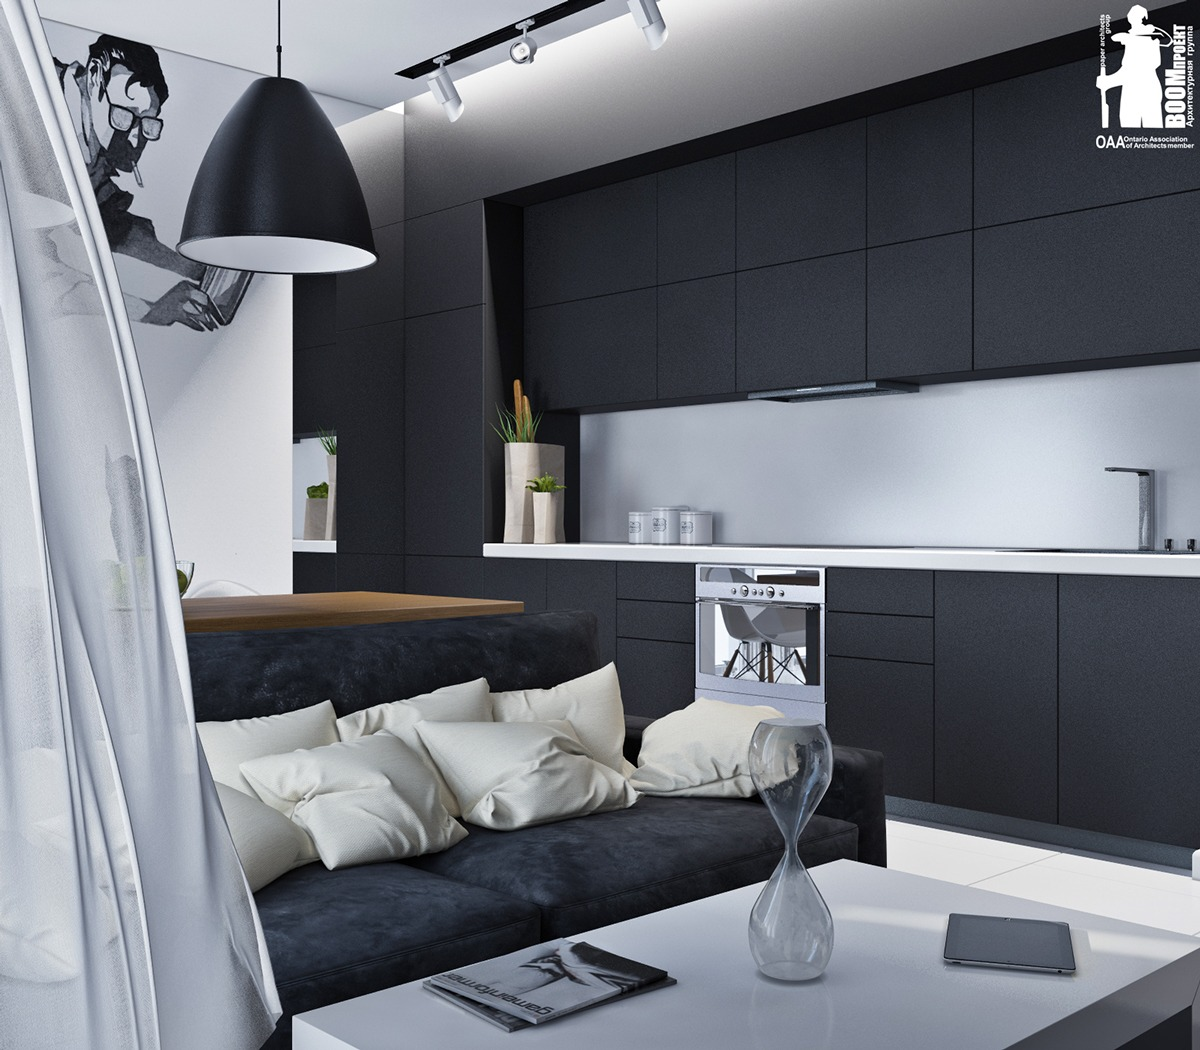 Artistic Apartments With Monochromatic Color Schemes - Color in home design